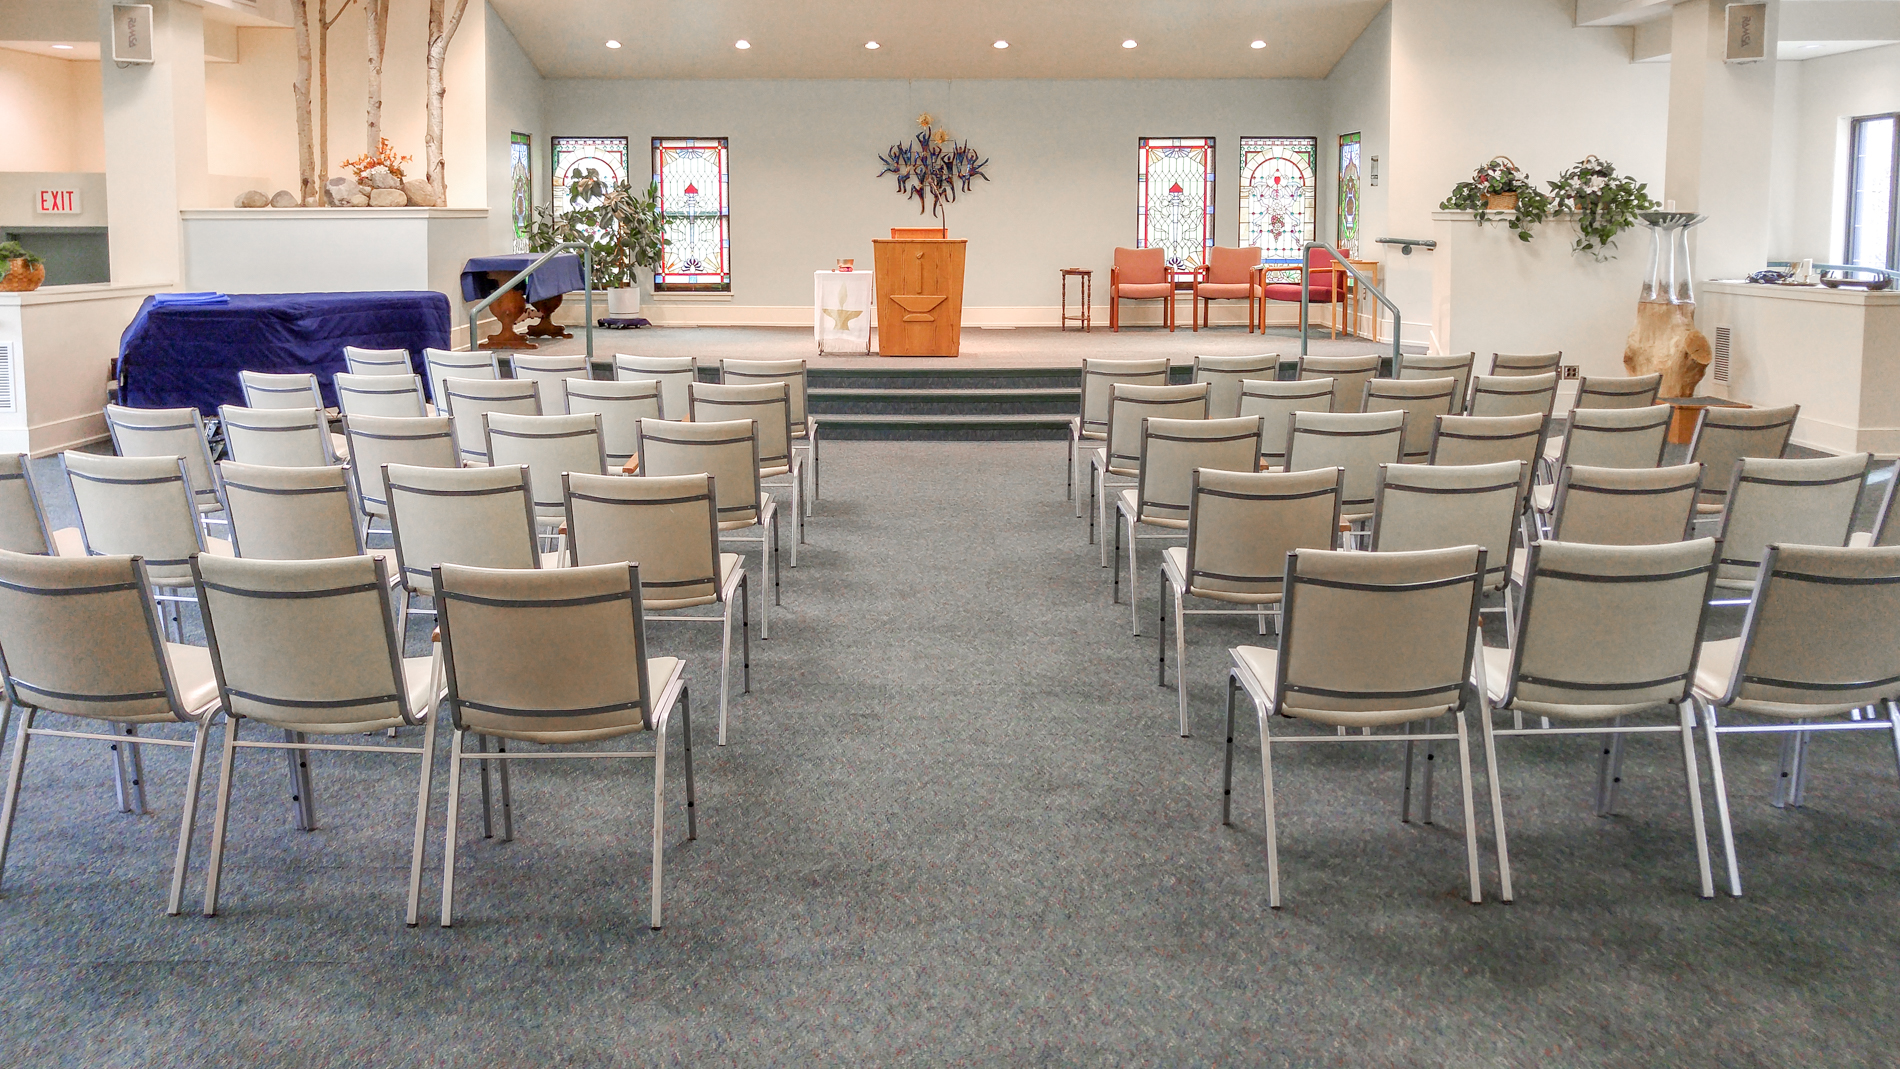 Chapel Area - Seats up to 200